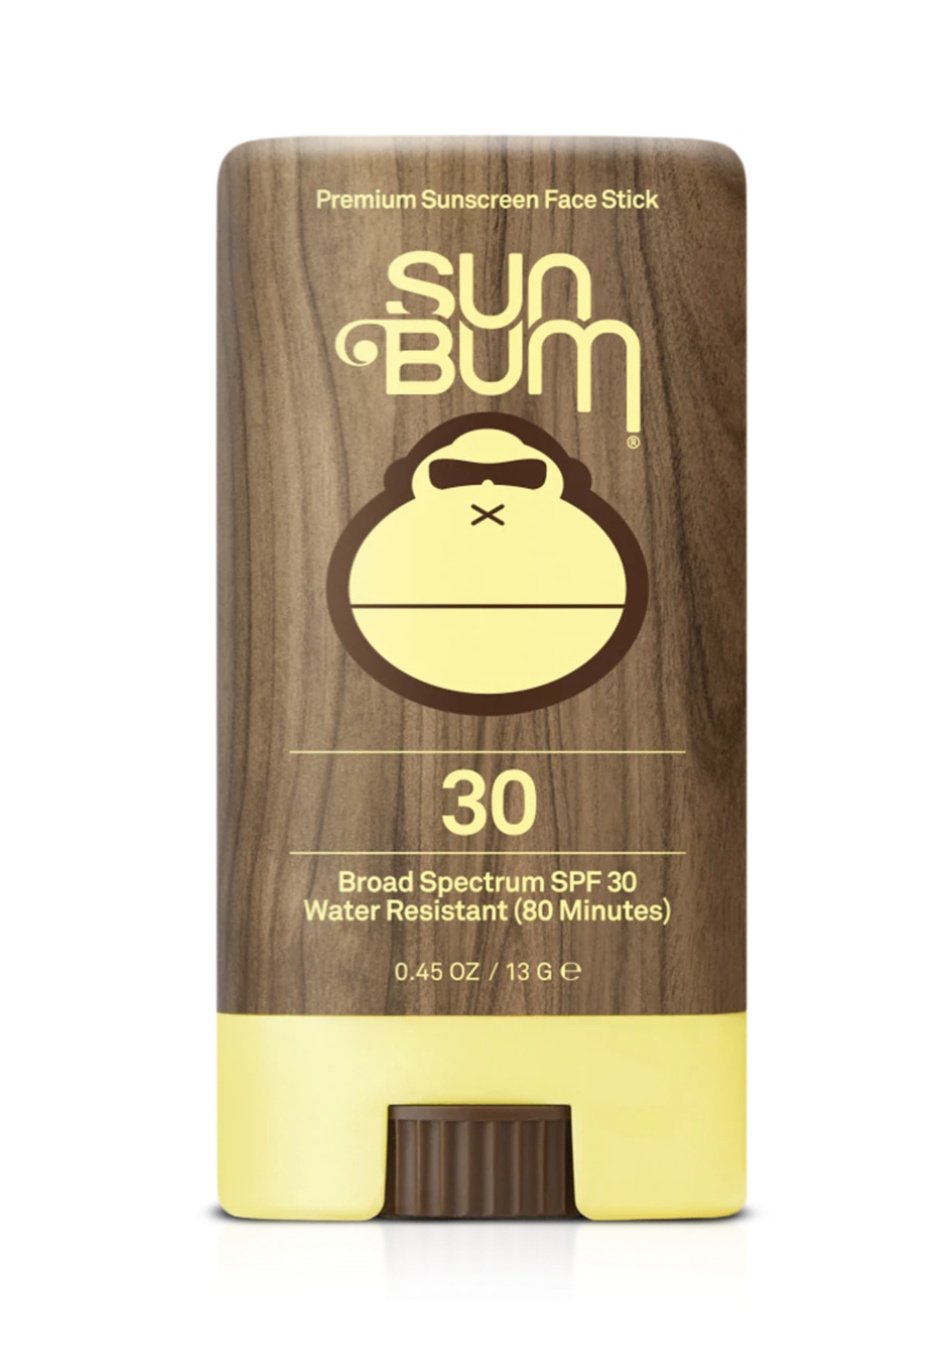 Sun Bum Sun Bum Original SPF 30 Face Stick